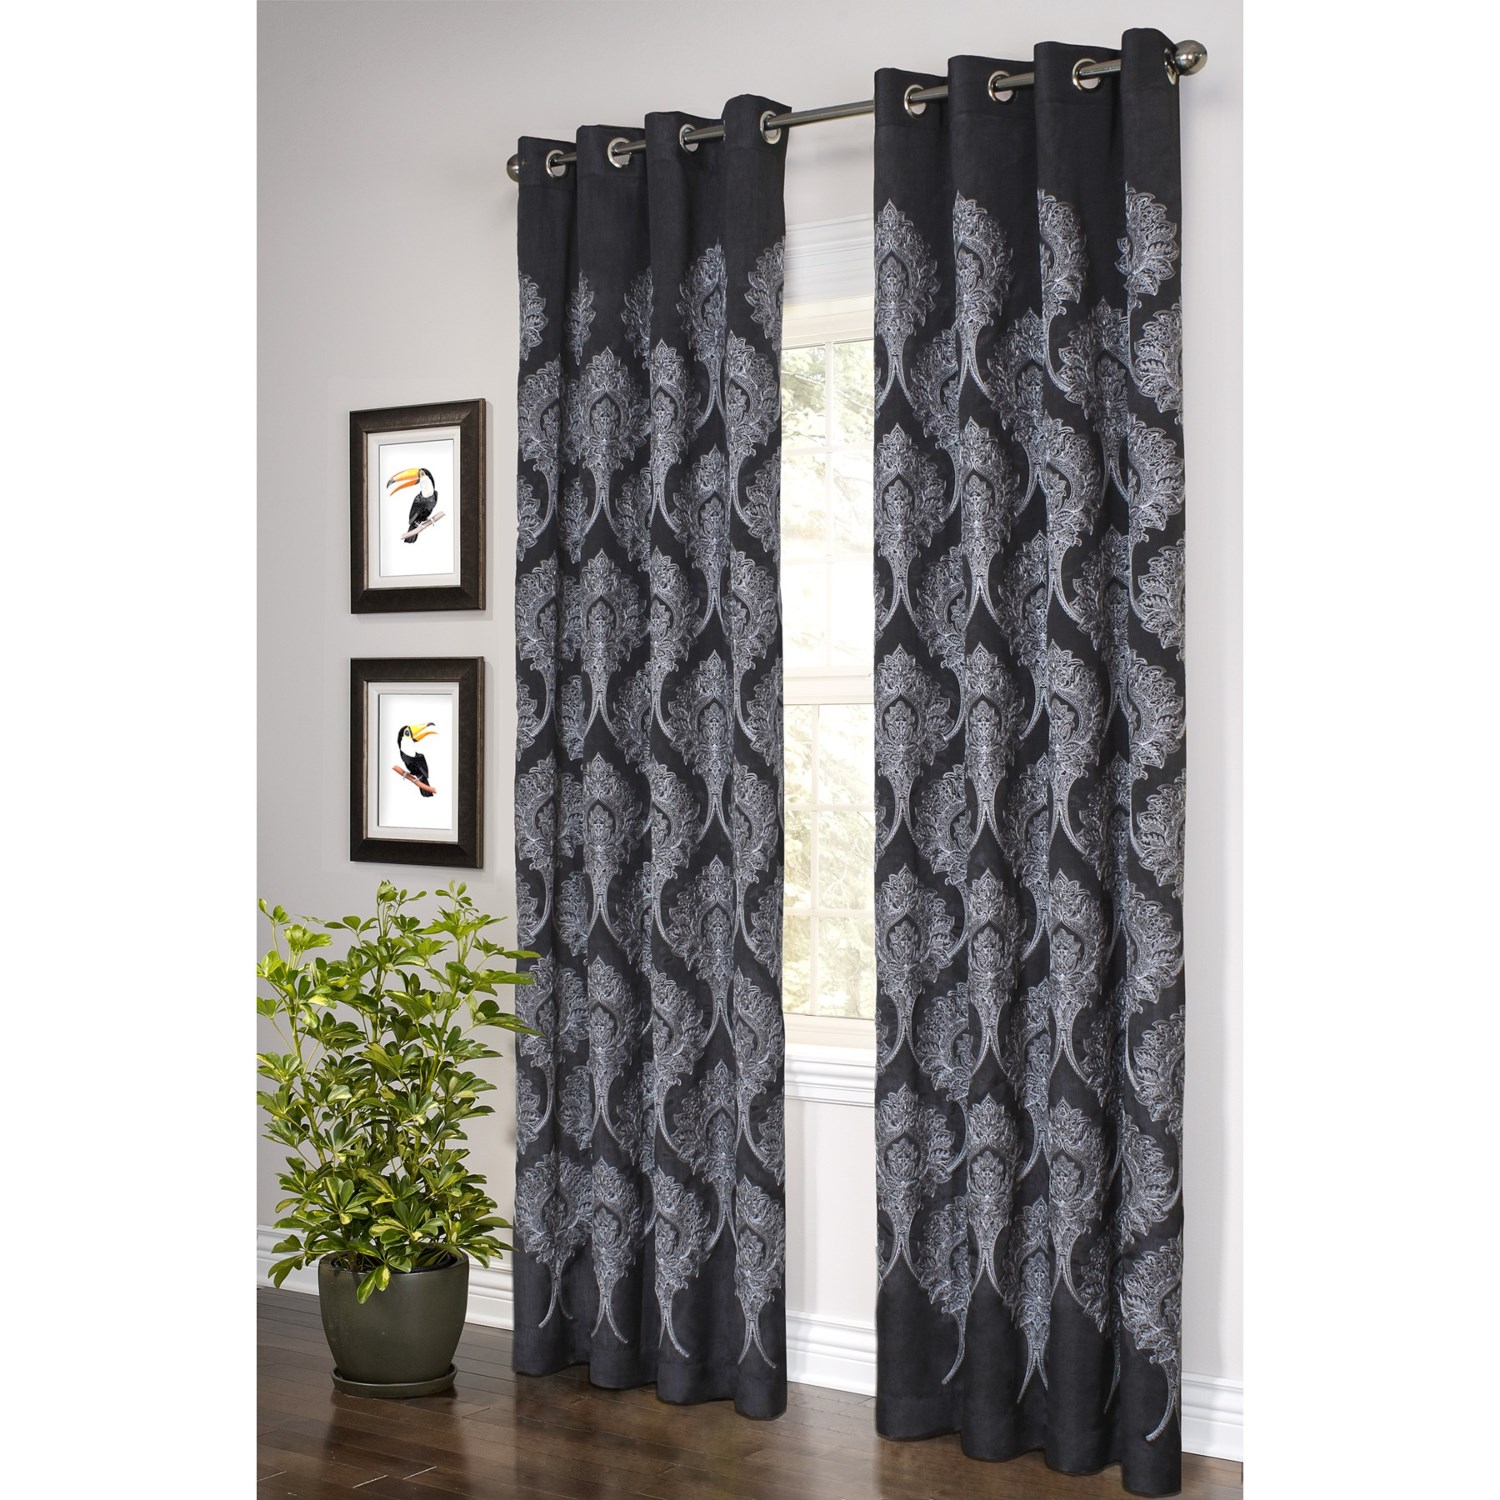 Bedroom Curtain Ideas Black Embroidered Curtains 95 Grommet Top In Black W  White Embroidery Black. Black and white striped curtains walmart